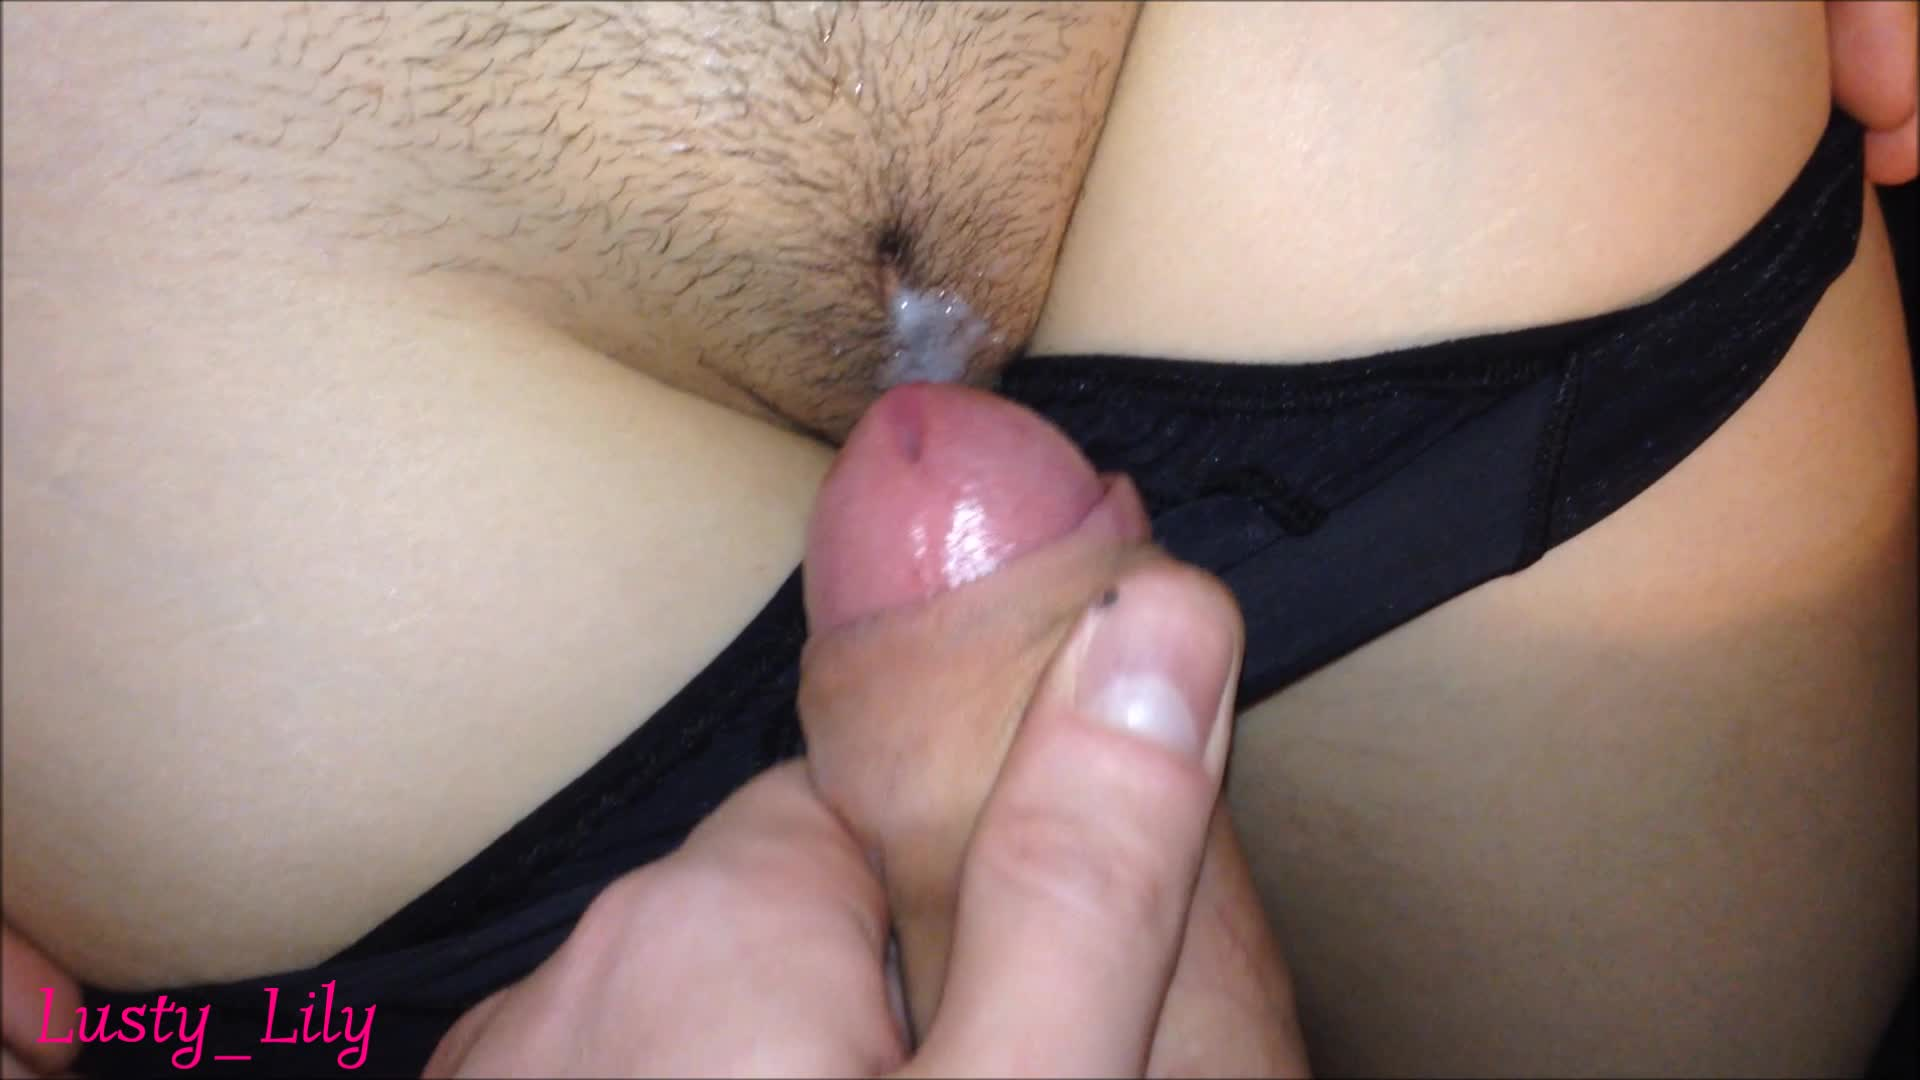 Cum over her panties closeup videos #15